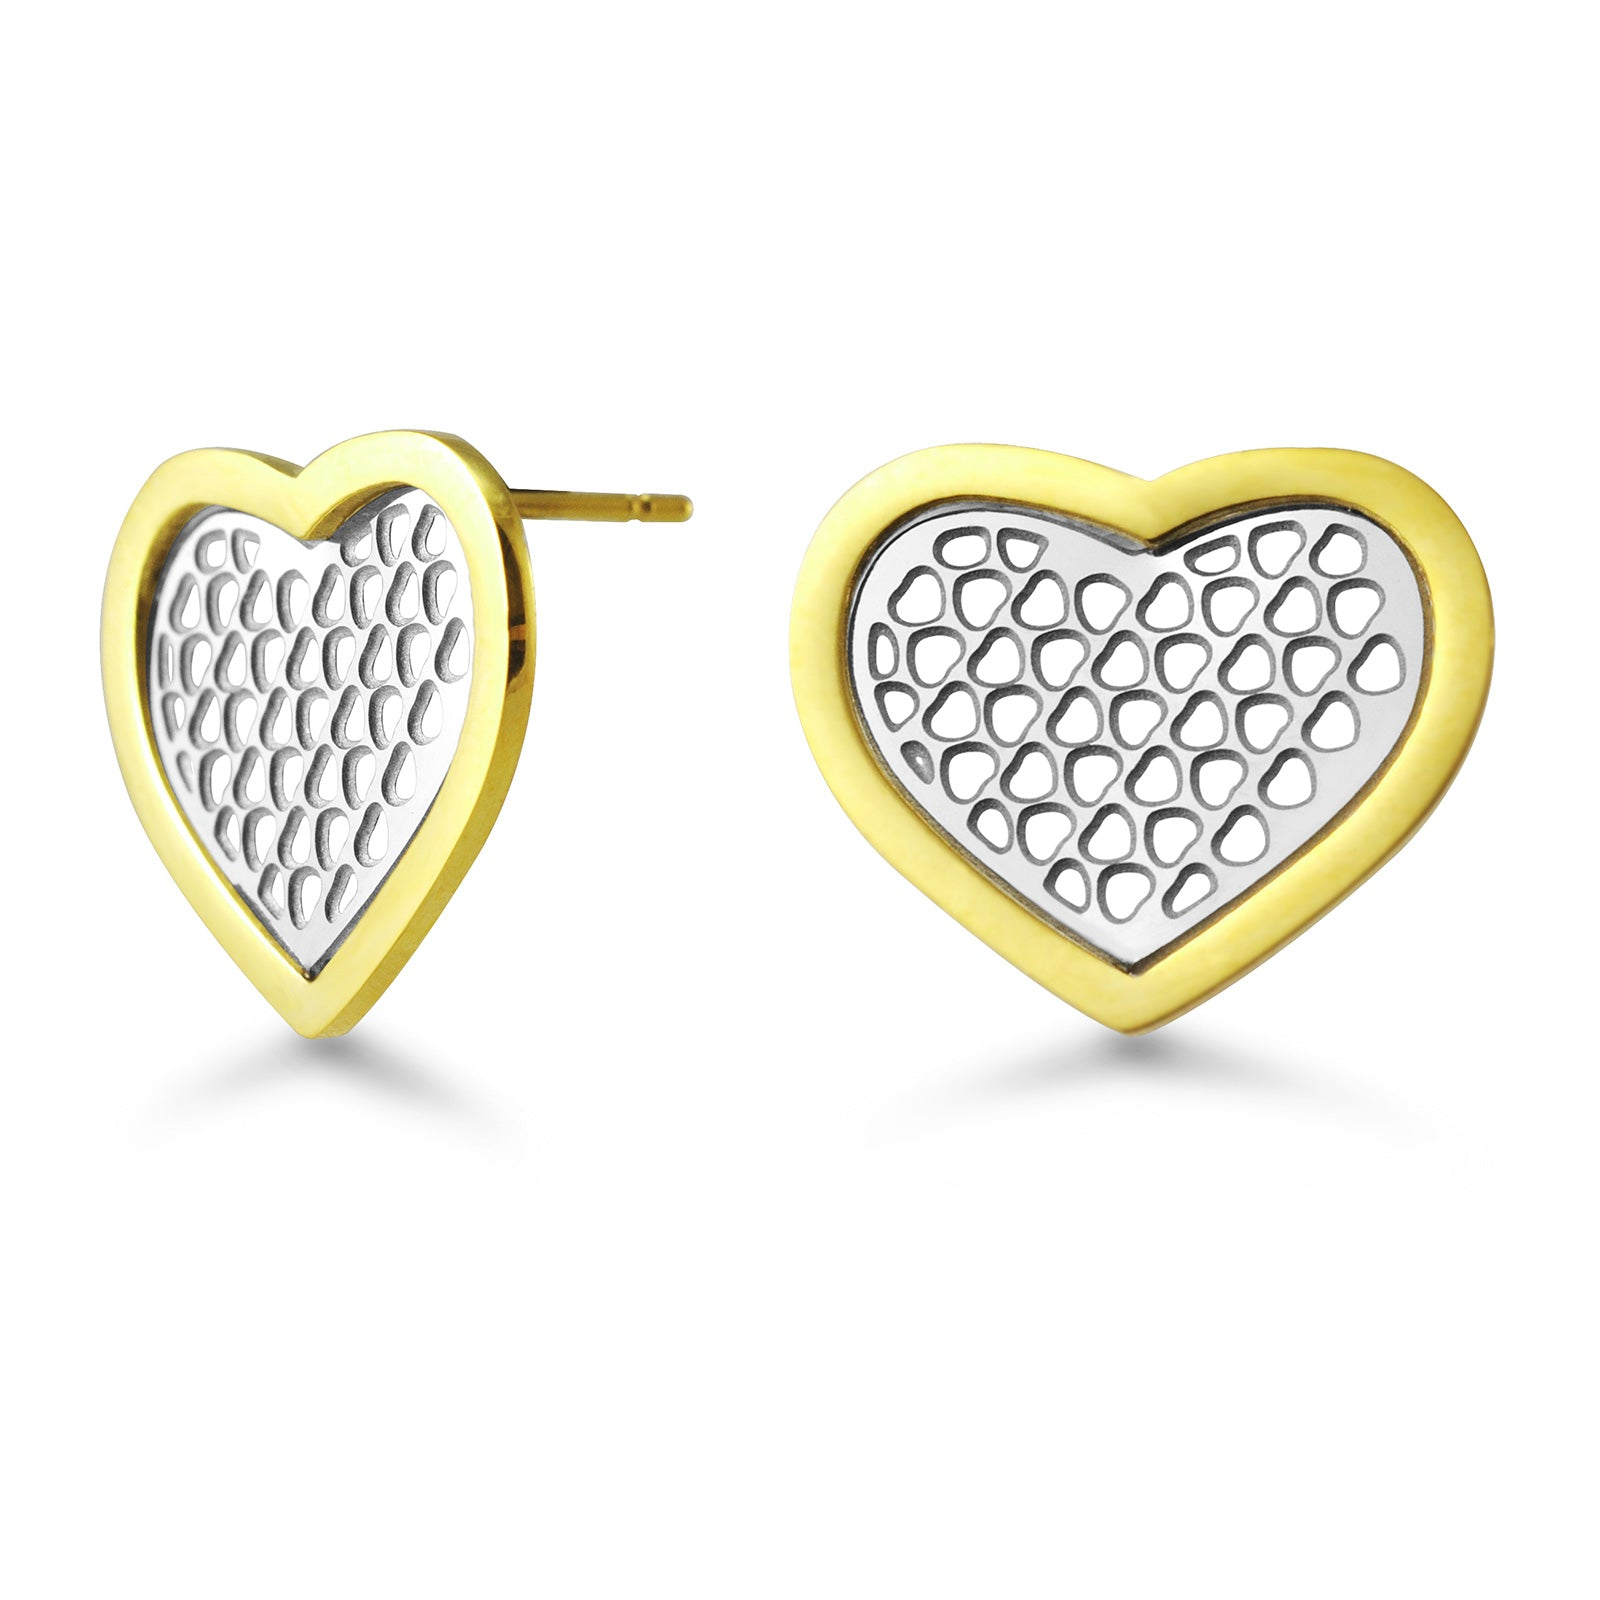 MNC-ER300-B  Stainless Steel & Gold Heart Stud Earrings